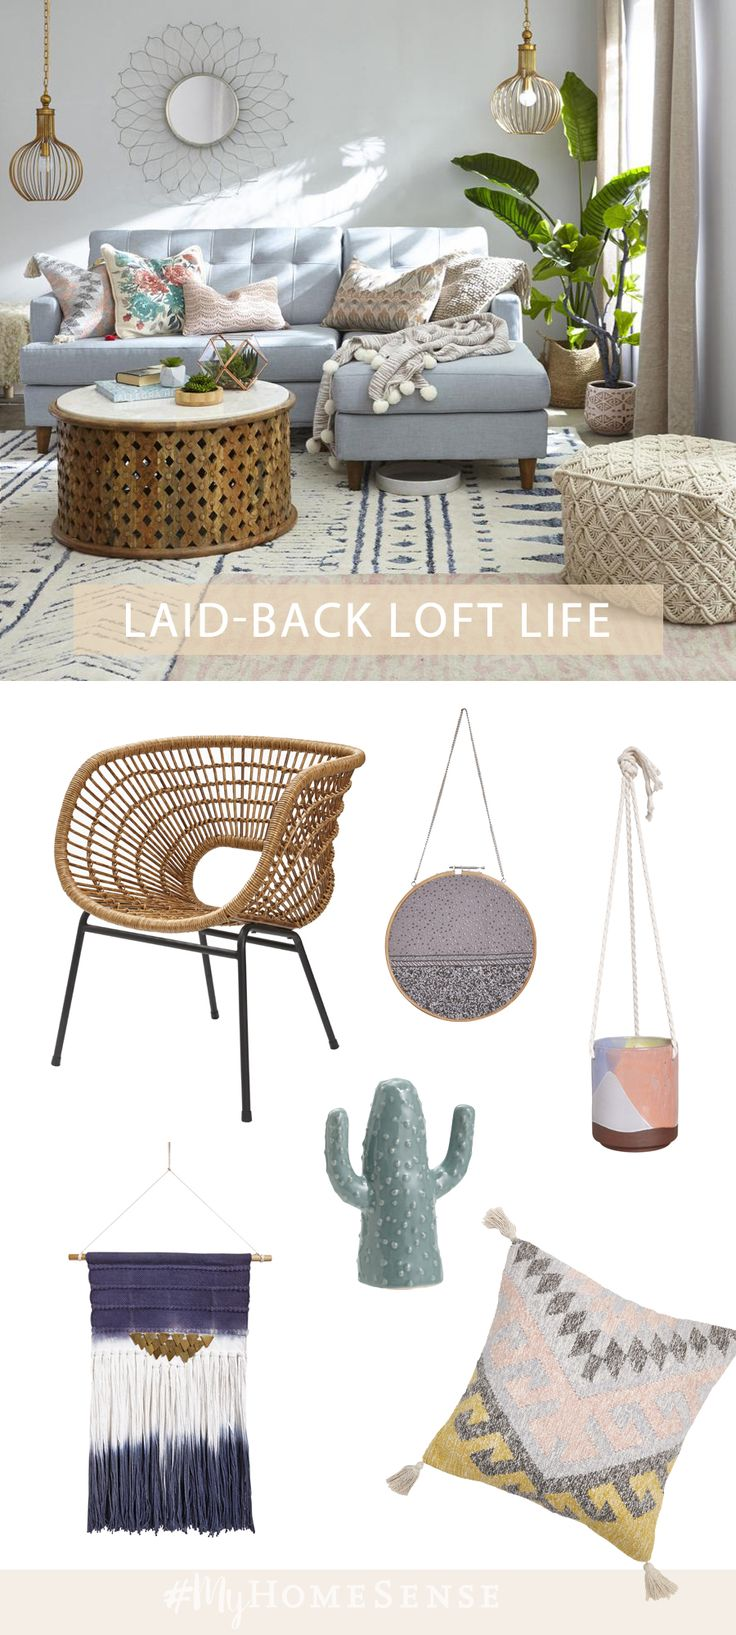 Love laid-back loft style? Achieve the layered boho look with #MyHomeSense. Piles of cushions and throws invite lengthy weekend lounging. We always have a soft-spot for layered rugs, adding the perfect amount of pattern play and softness underfoot. Visit us in-store for lovable, layered loft style!